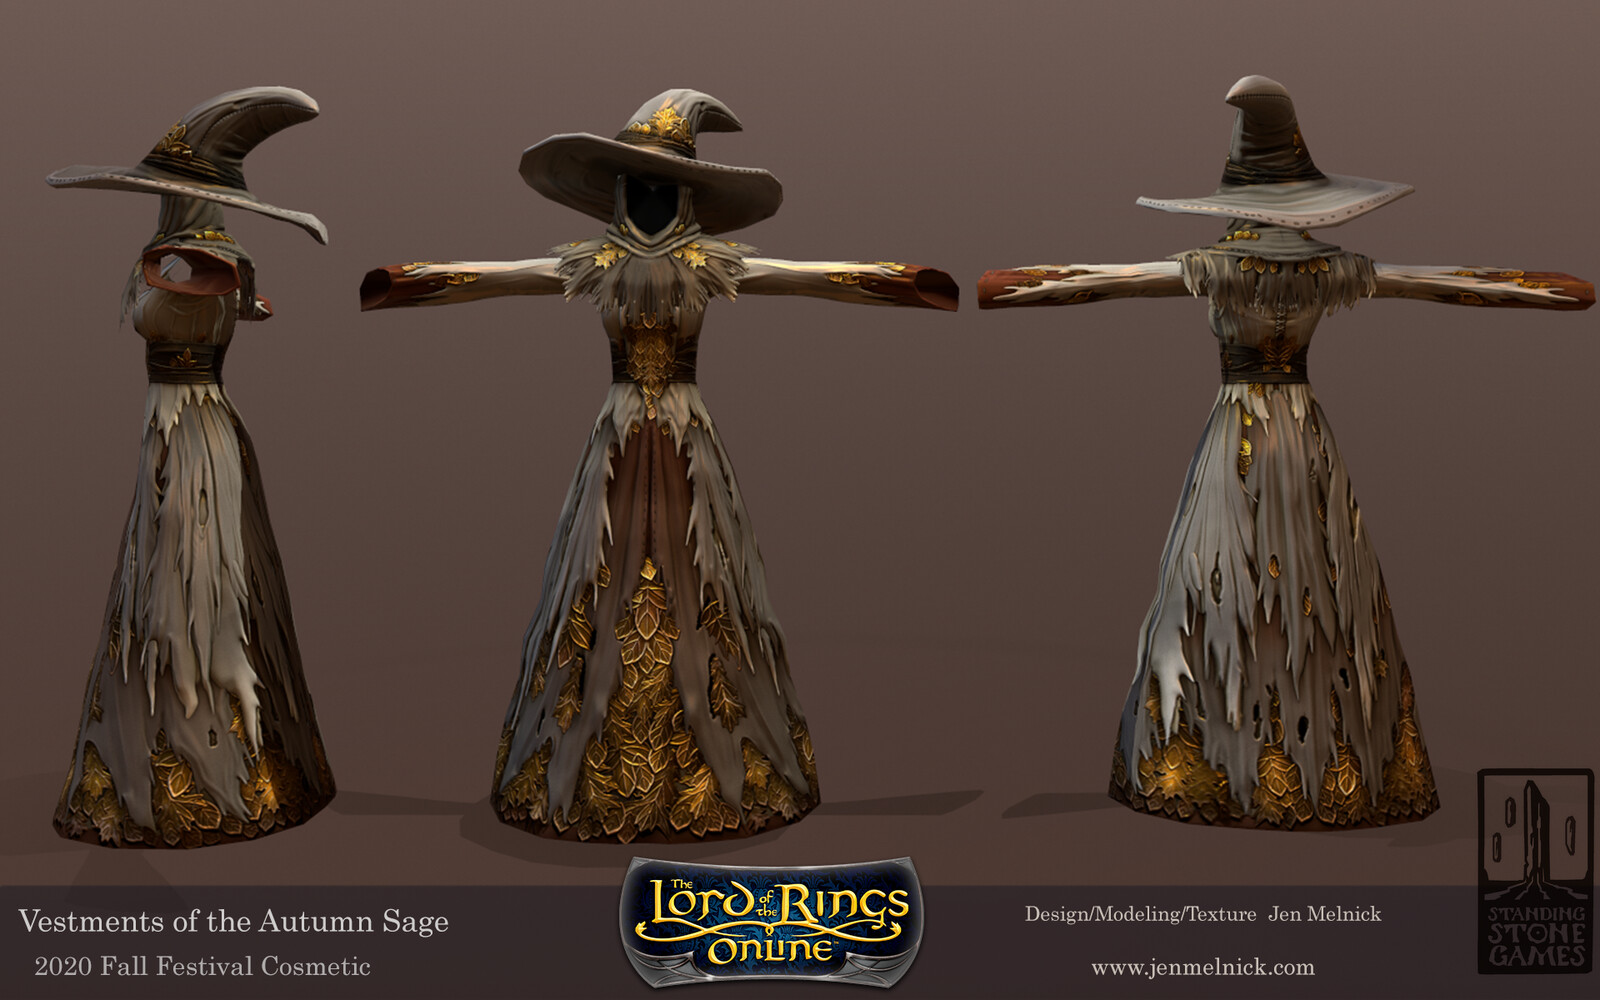 Lord of the Rings Online Vestments of the Autumn Sage Fall Festival 2020 Dress, Shoulders, Hat, and Cloak are all dyeable Undyed(Base) Textures